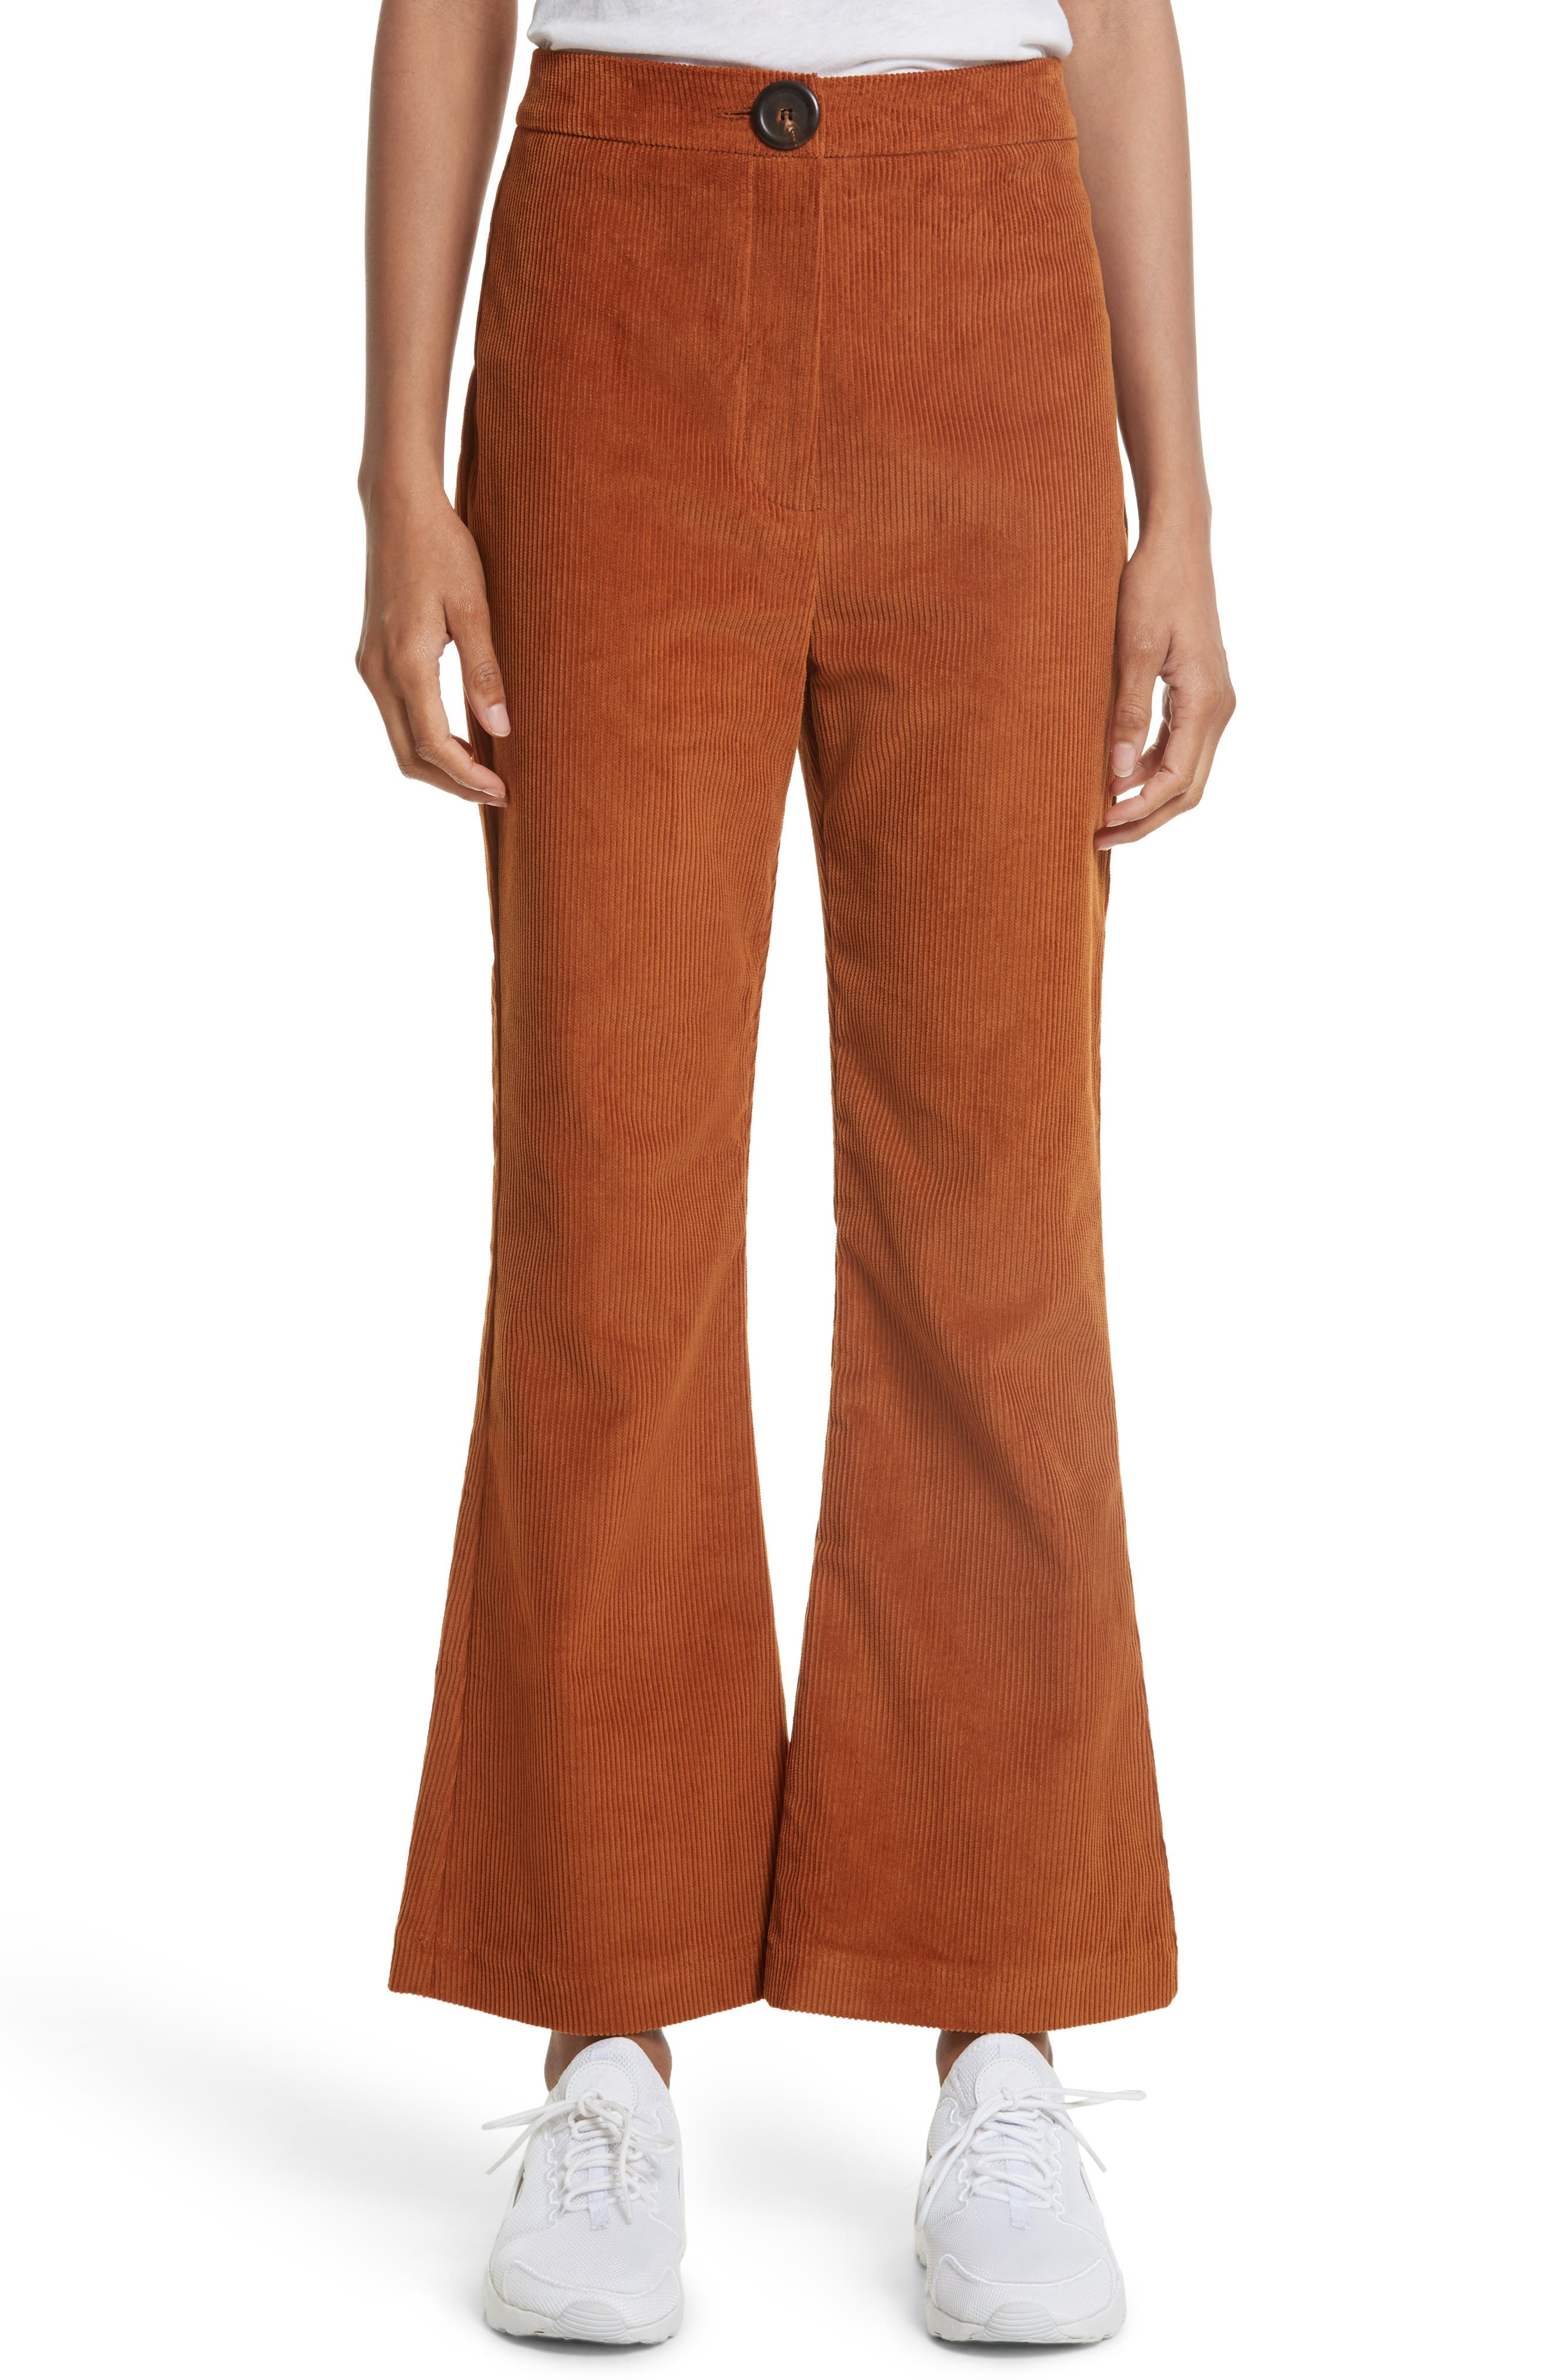 Crop Flare Corduroy Trousers,                         Main,                         color, 200